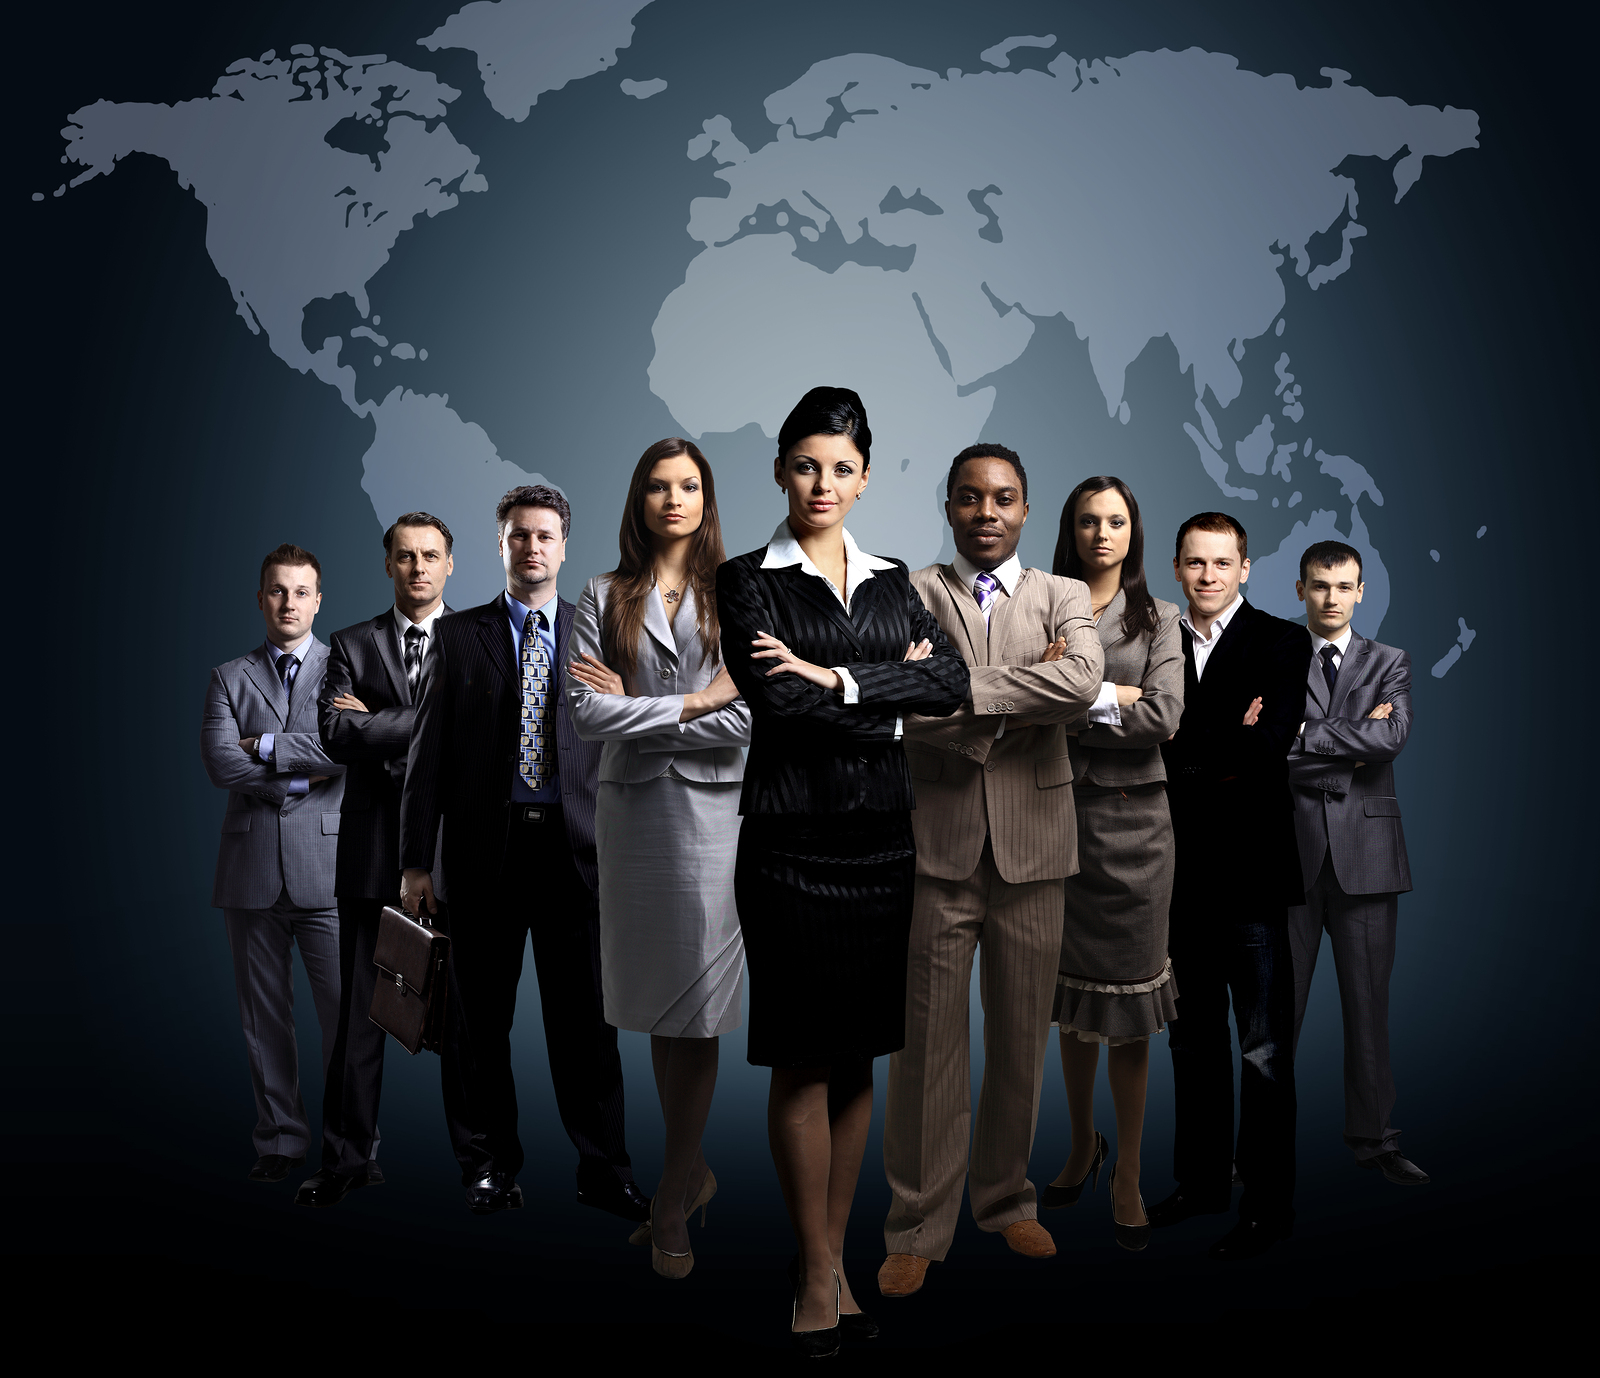 Wonderful Business People Wallpaper Full Hd Pictures